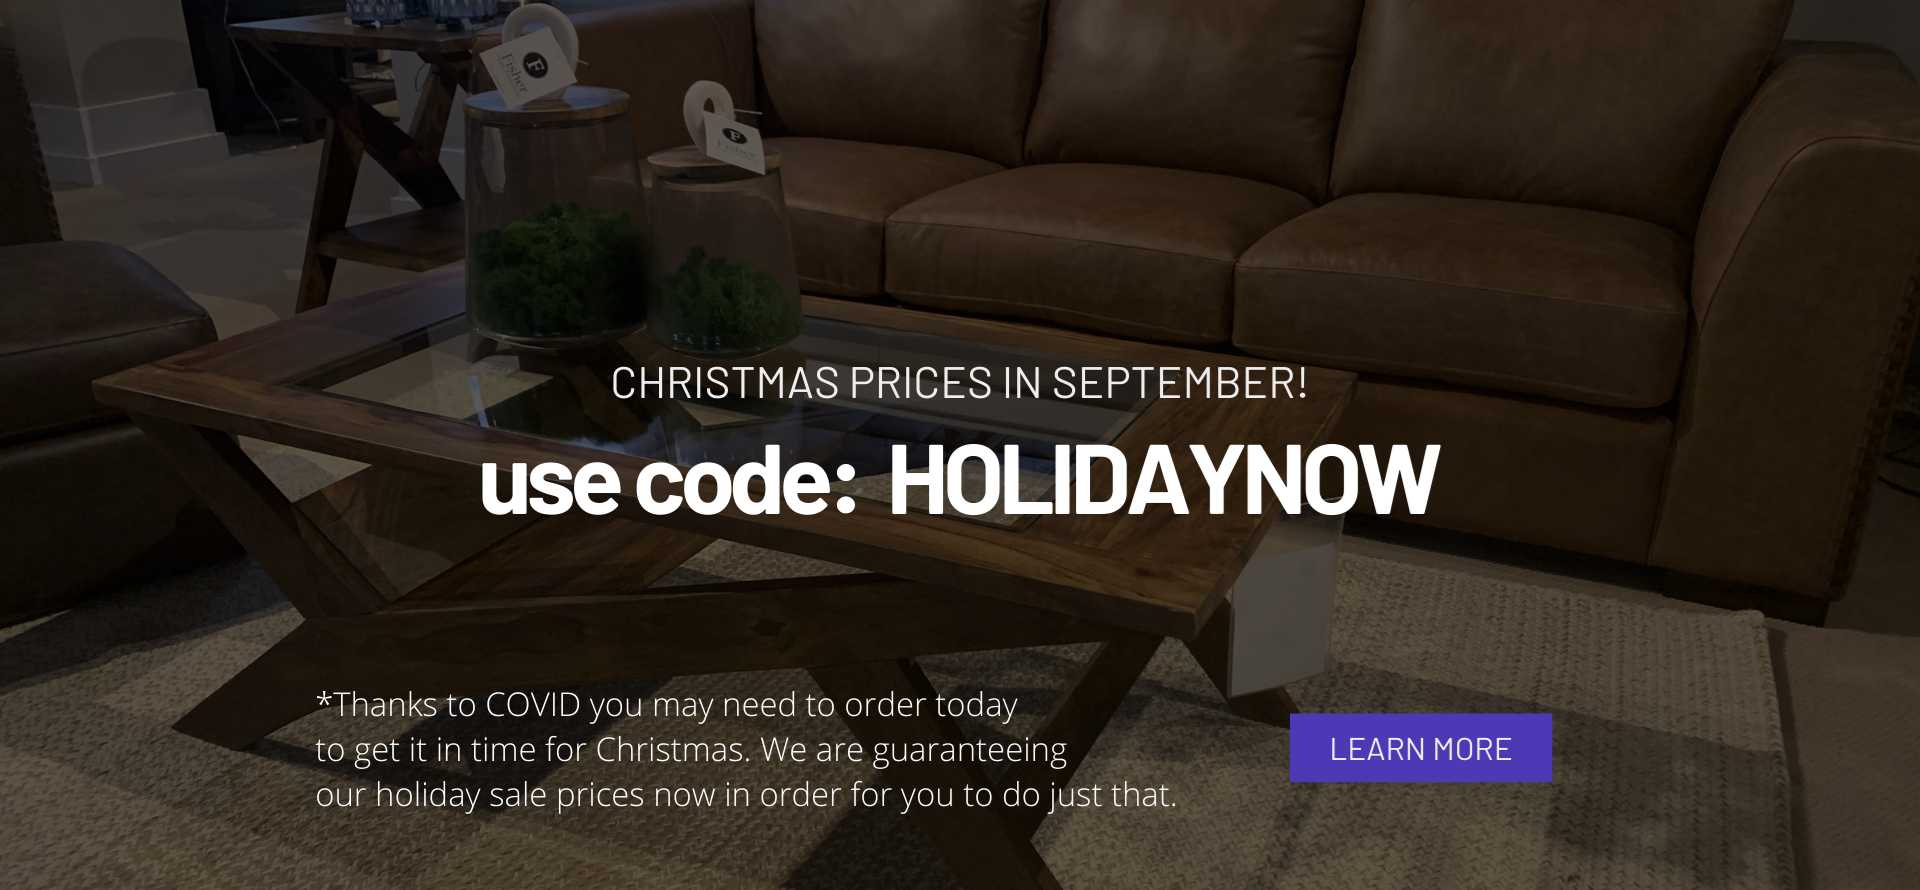 holiday prices now